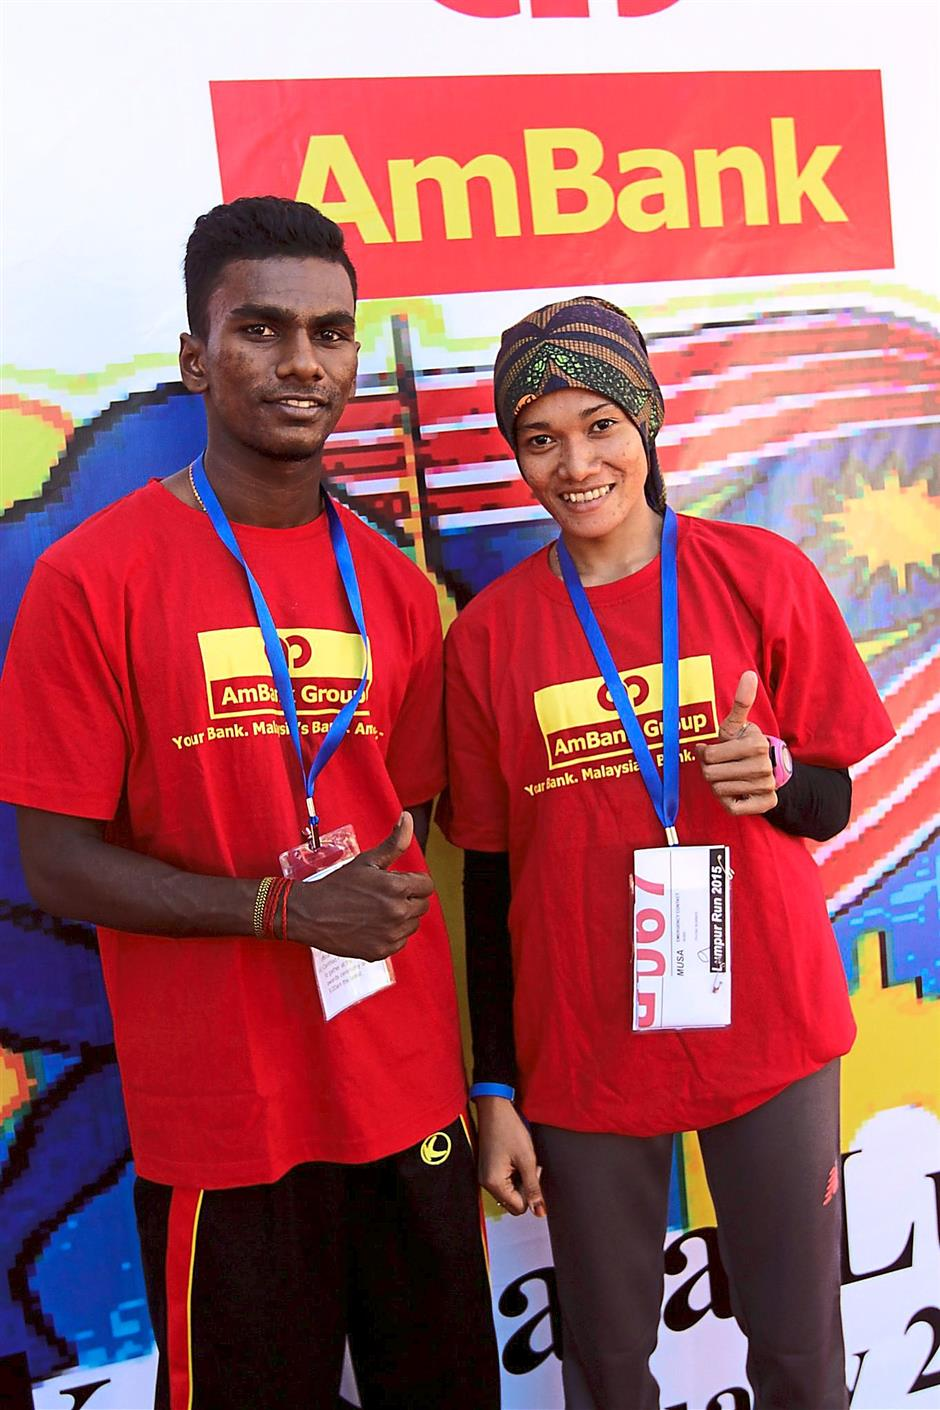 Champions: Thevan and Noor Amelia giving the thumbs up to the race.